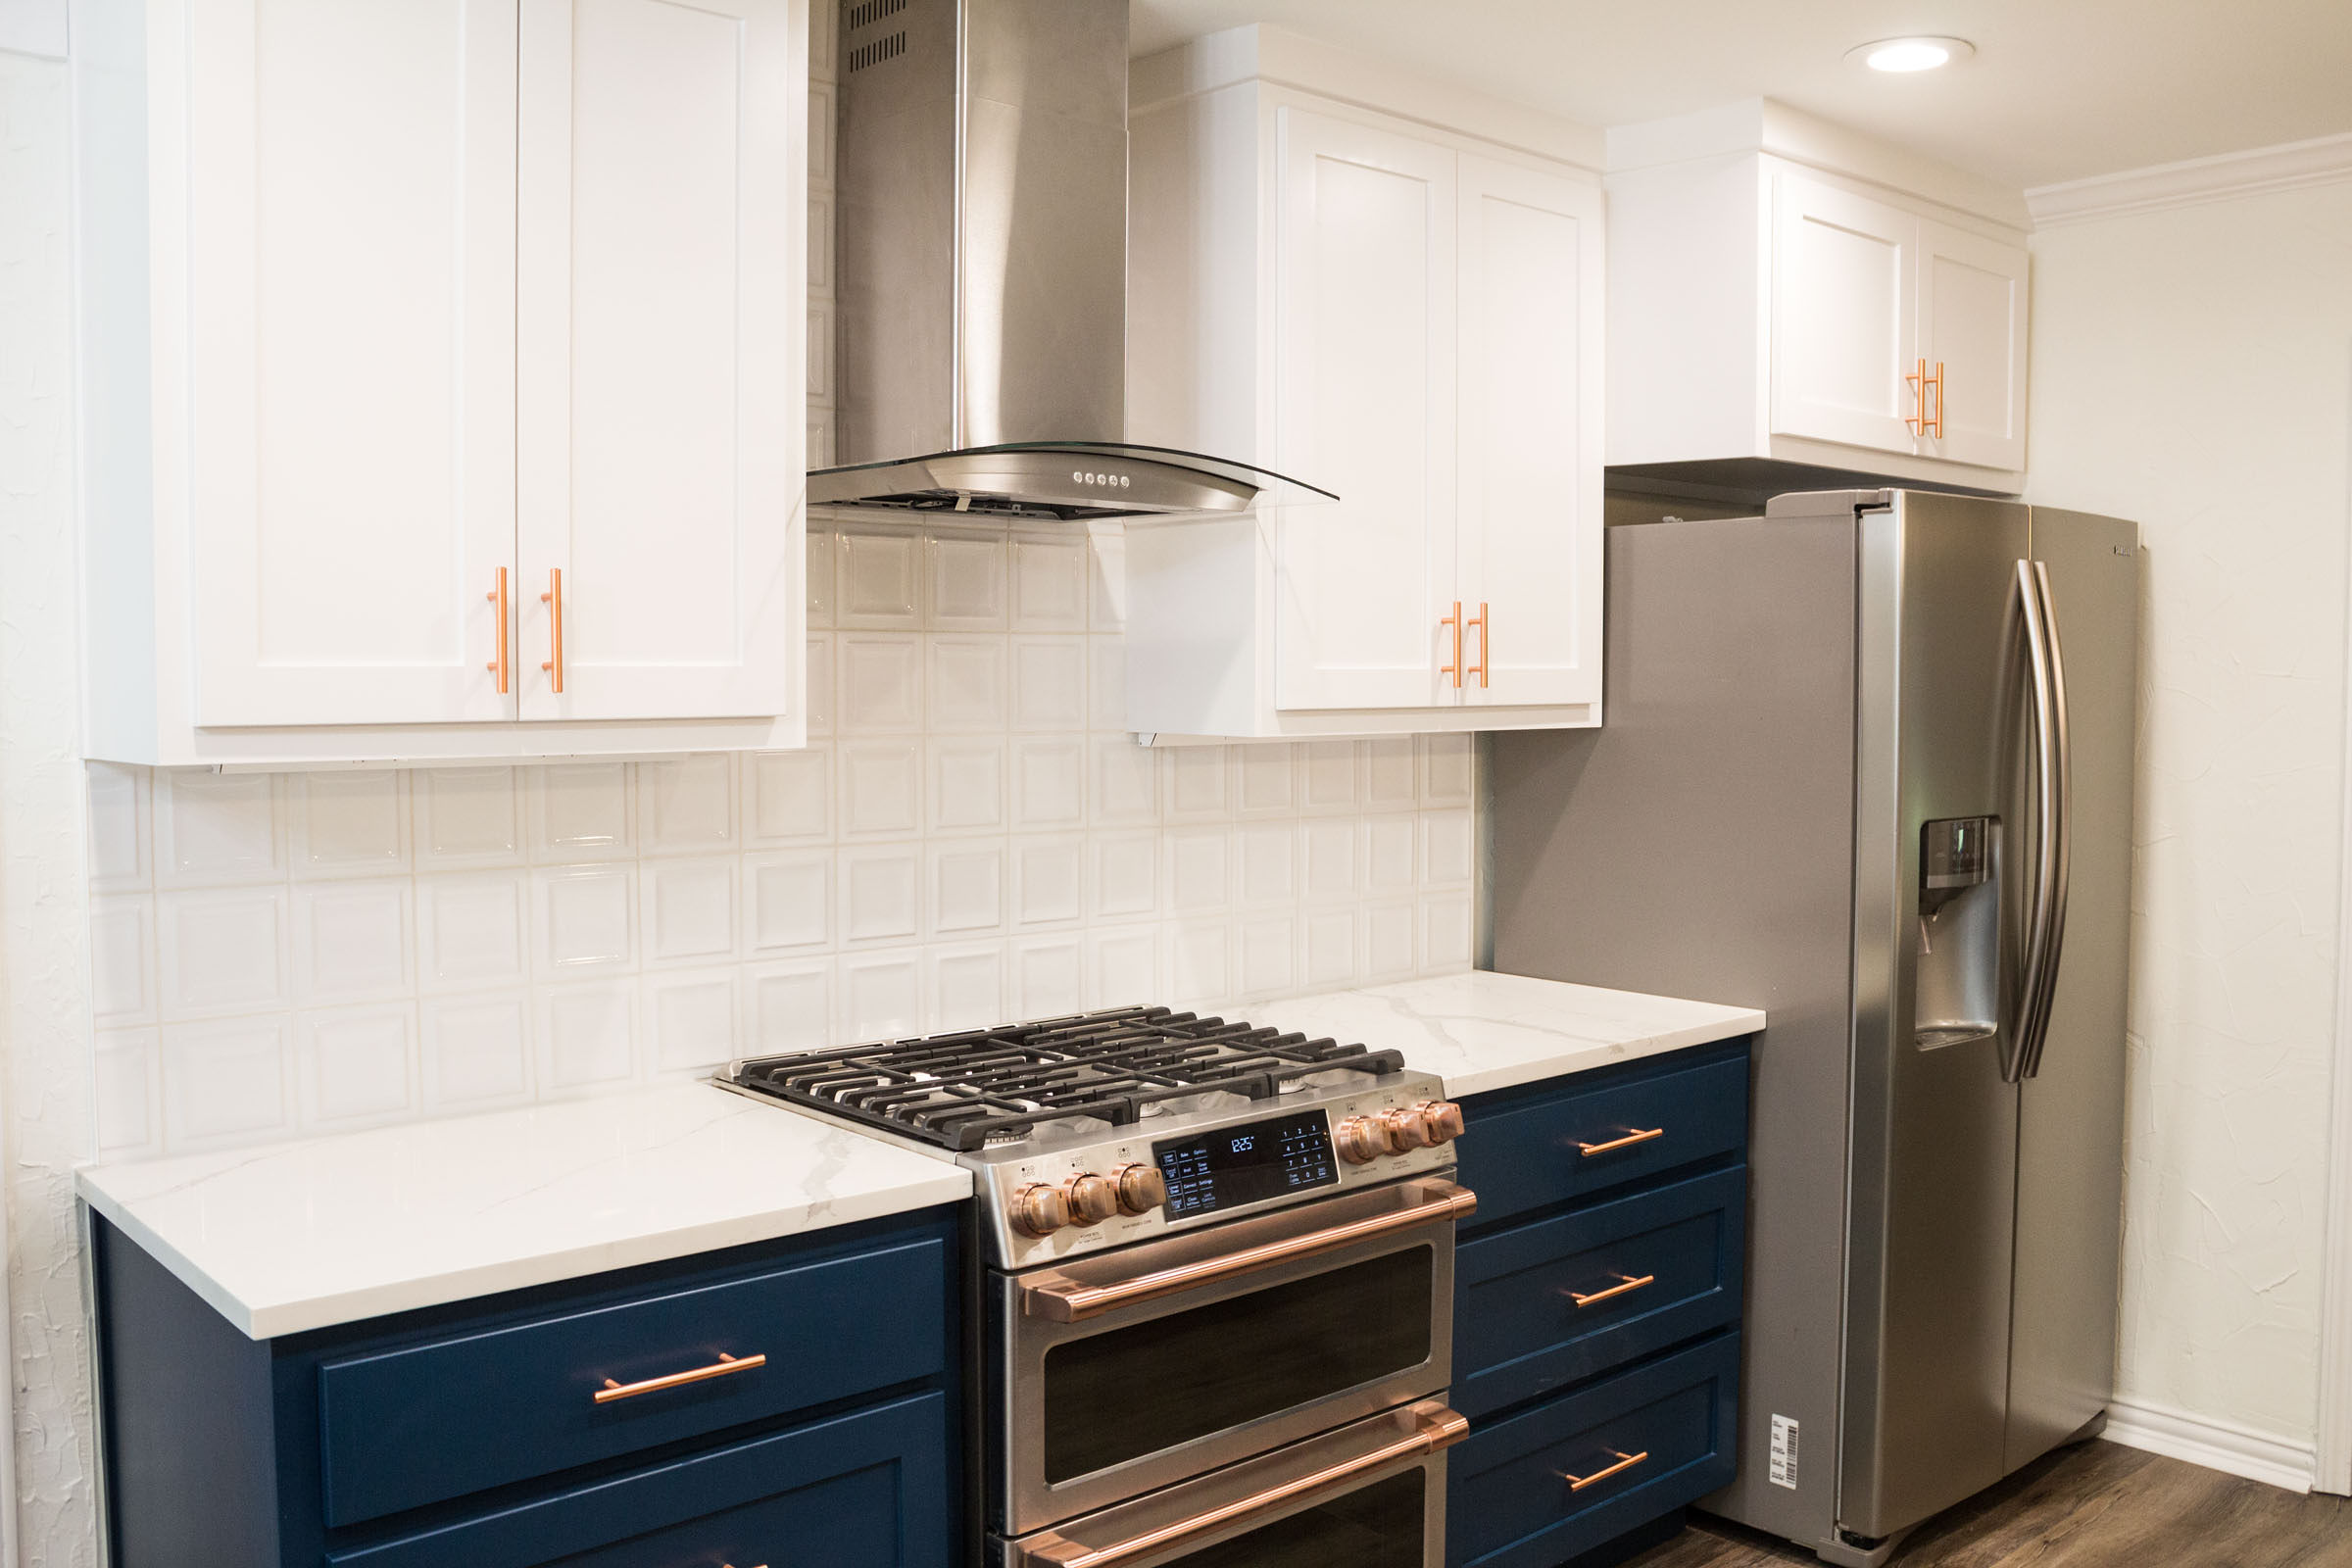 Navy and copper kitchen remodel photo shoot